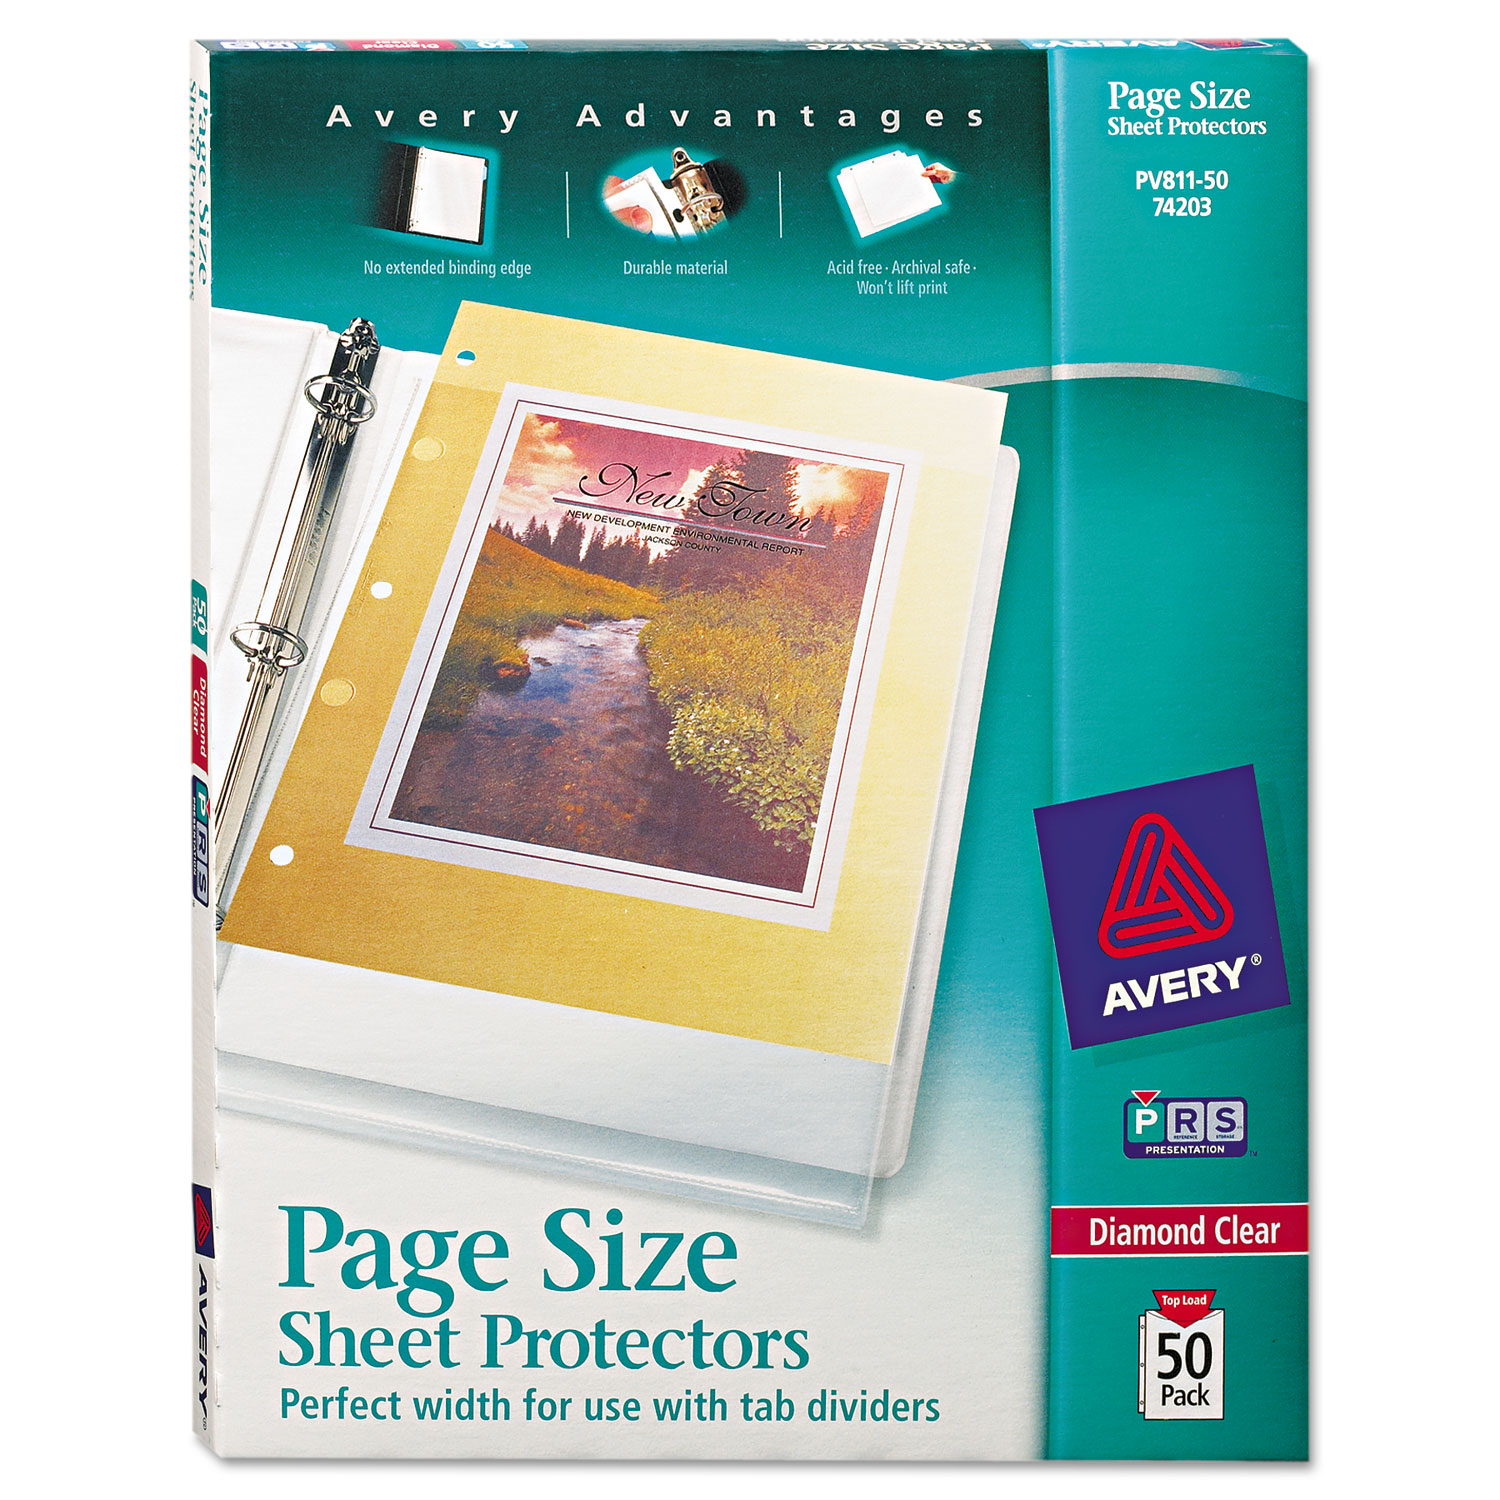 Avery(R) Diamond Clear Page Size Sheet Protectors, 50/pack (74203)